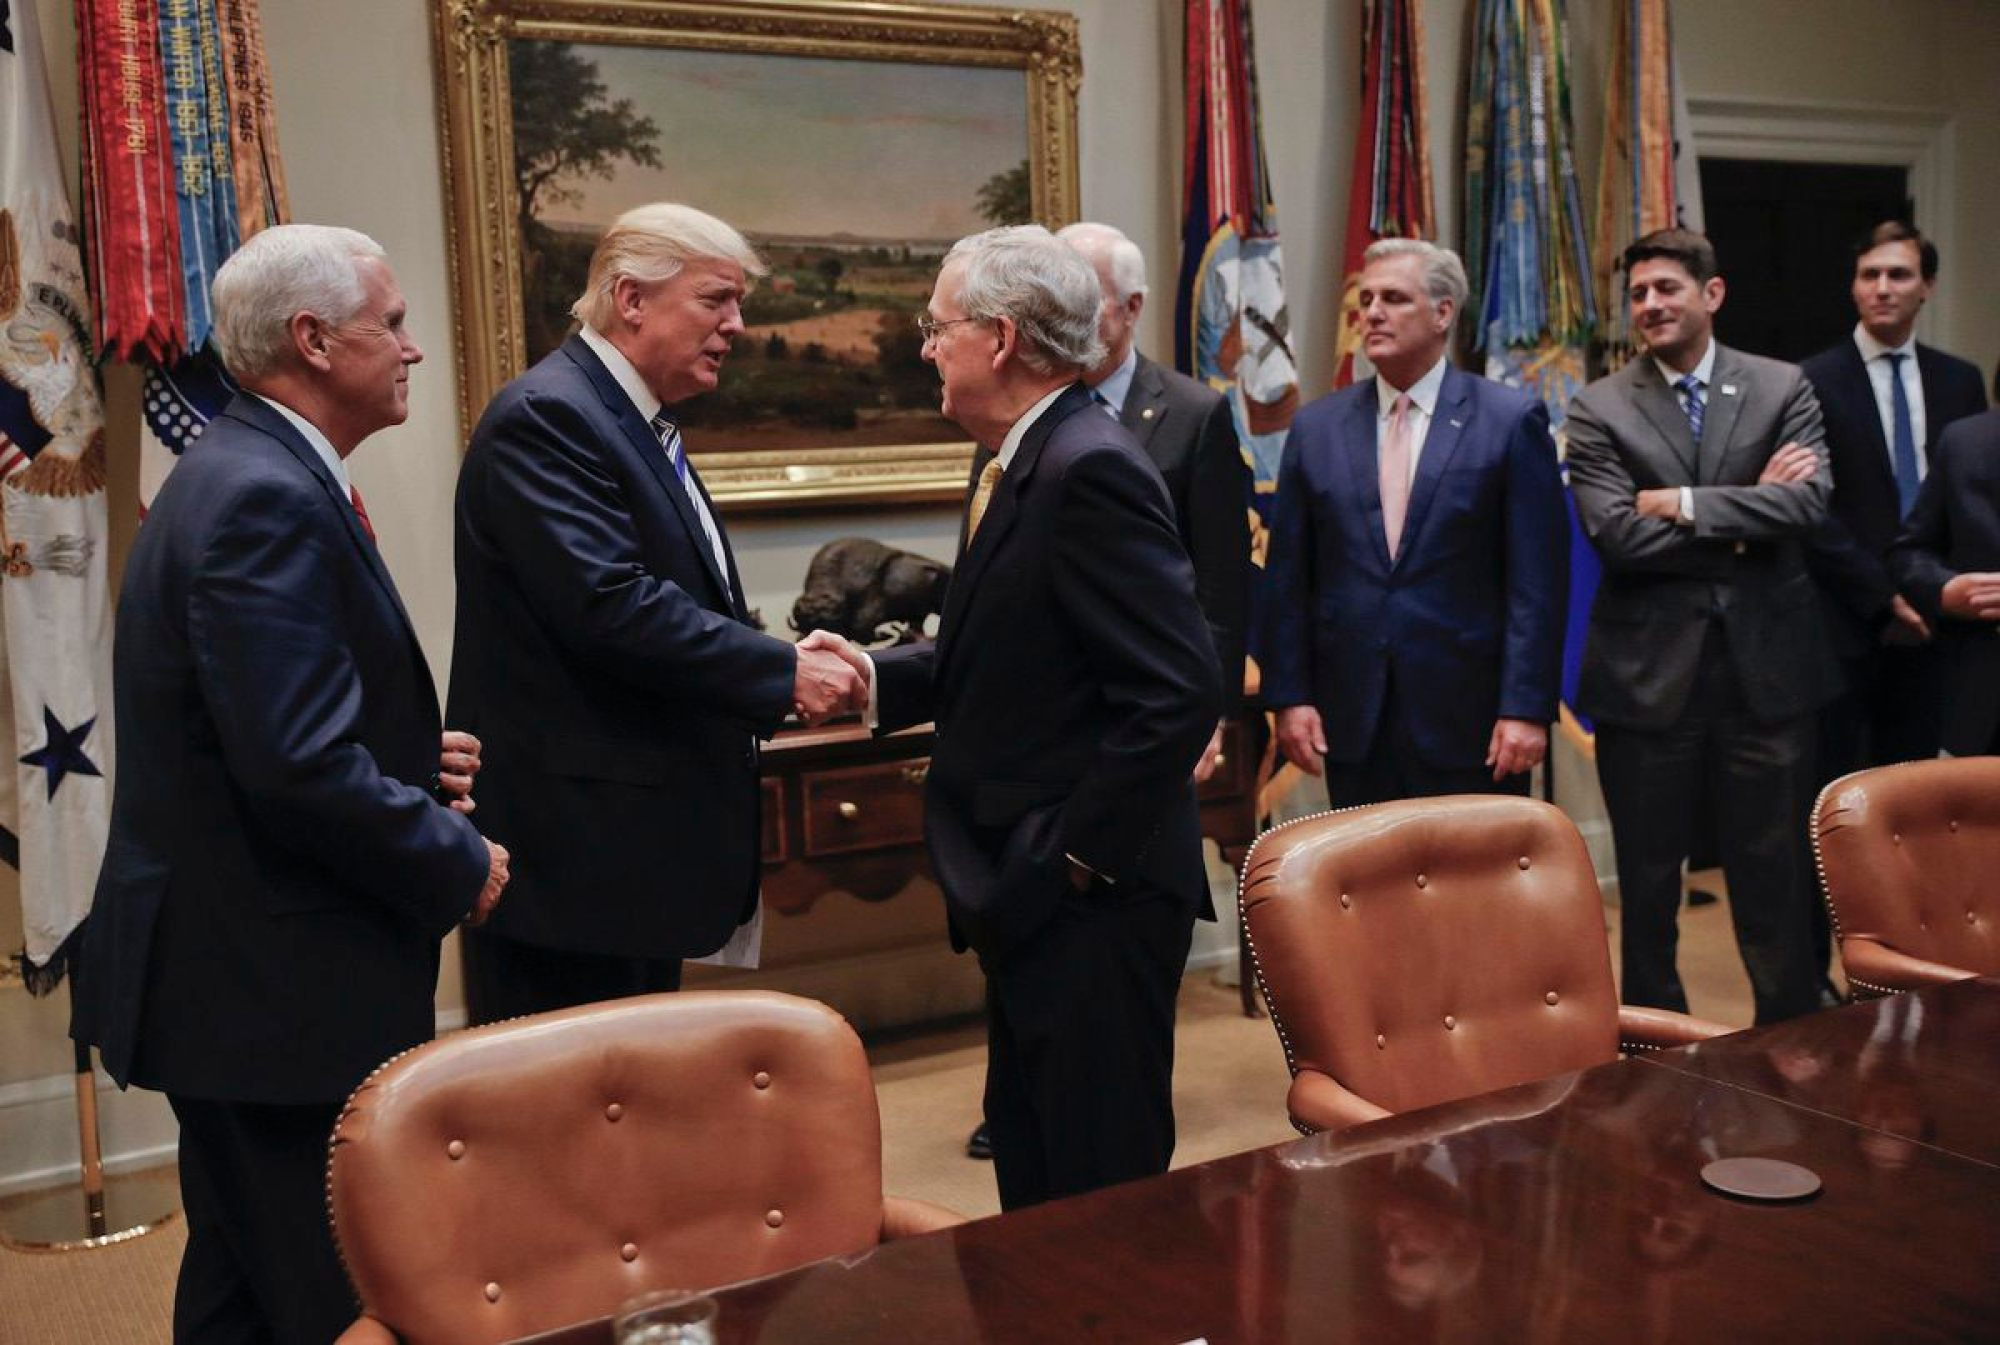 President Donald Trump shakes hands awith Senate Majority Leader Mitch McConnell of Ky., center, before the start of a meeting with House and Senate Leadership in the Roosevelt Room of the White House in Washington, Tuesday, June 6, 2017. Also in the room are from left, Vice President Mike Pence, Senate Majority Whip John Cornyn, R-Texas, House Majority Leader Kevin McCarthy of Calif., House Speaker Paul Ryan of Wis., and Senior adviser to President Donald Trump Jared Kushner. (AP Photo/Pablo Martinez Monsivais)